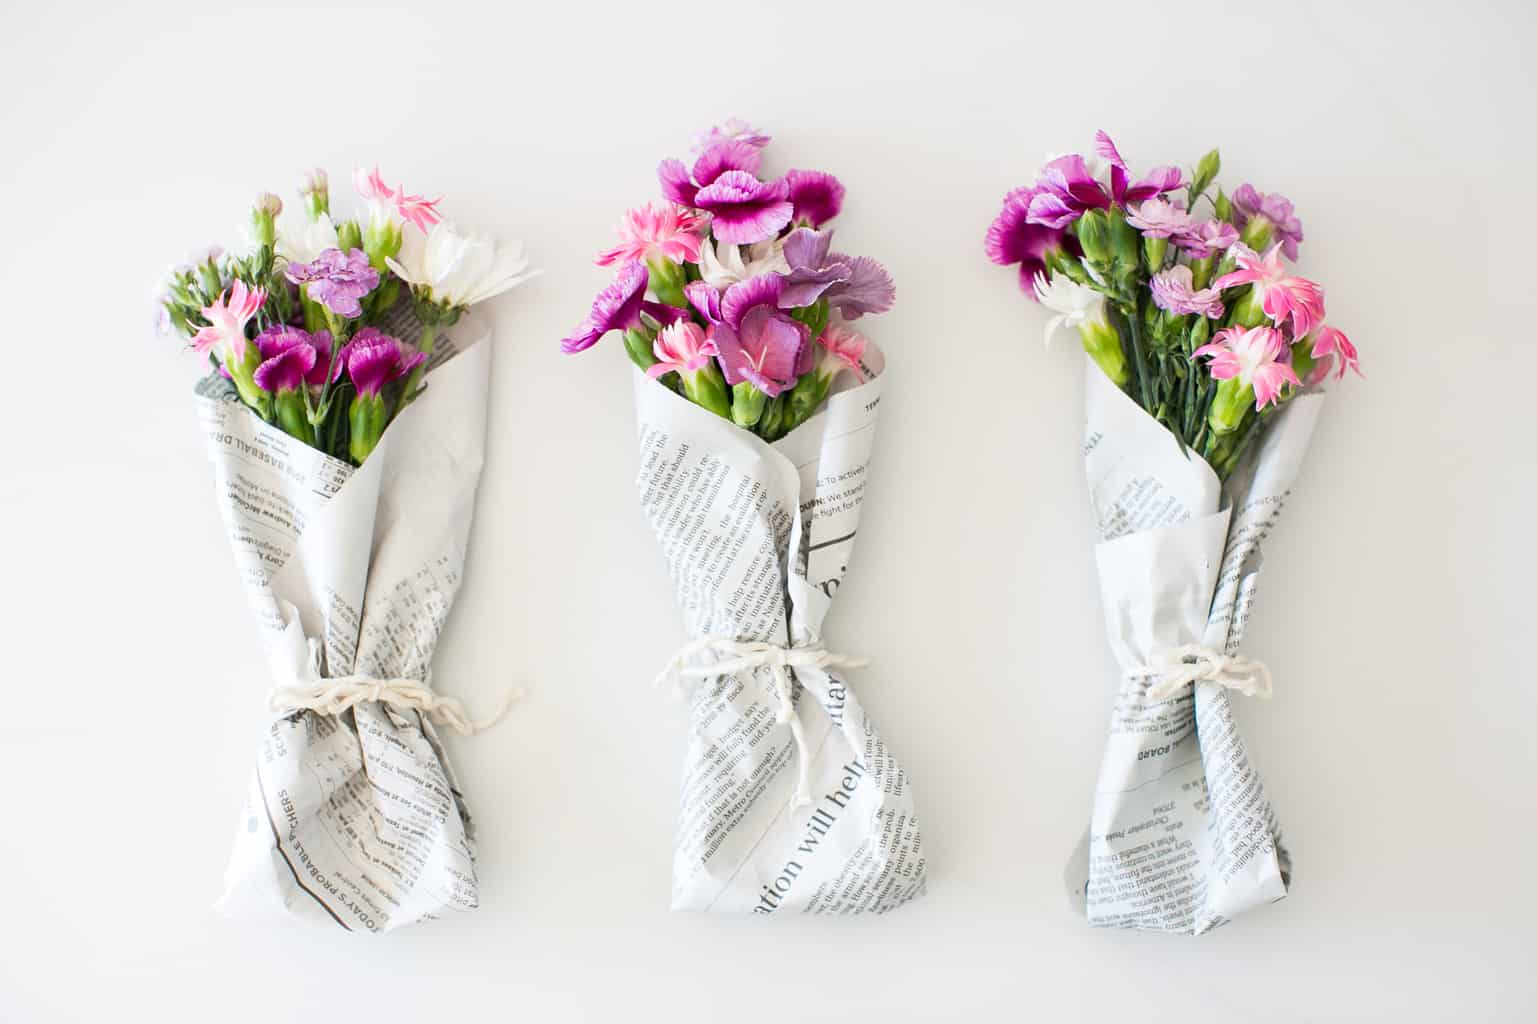 Mini Grocery Store Flower Bouquets